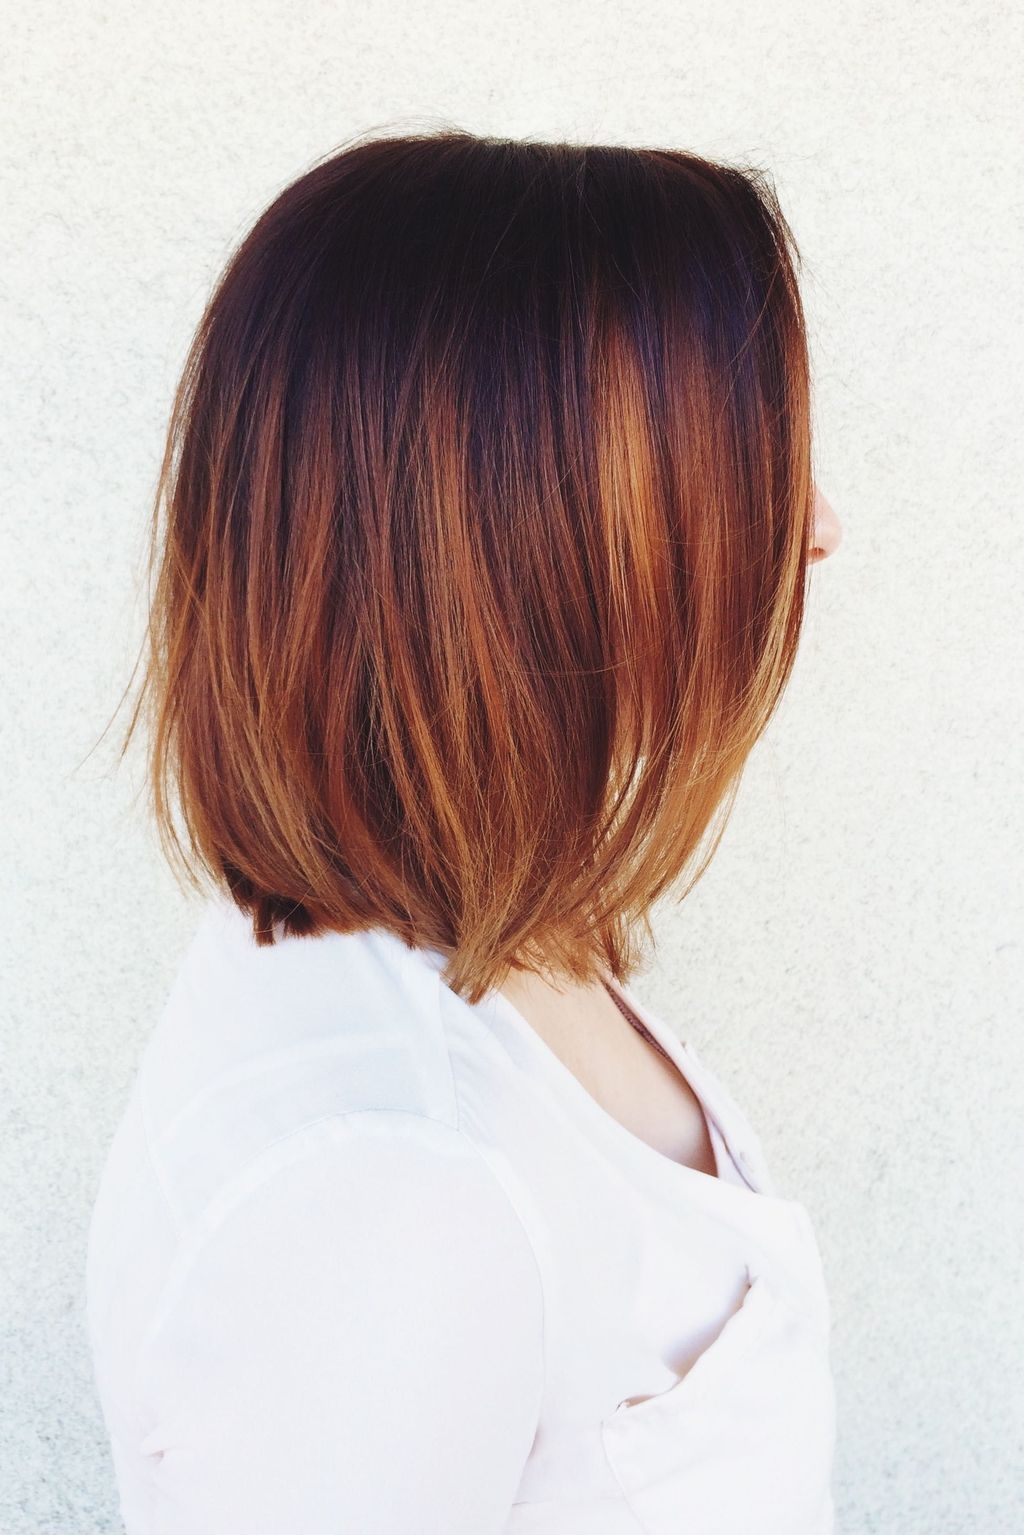 Trend fashionist 60 adorable short ombre hair color ideas when deciding on the right hair color for yourself there are a number of options to consider as a professional stylist since yikes 1984 i can help solutioingenieria Images